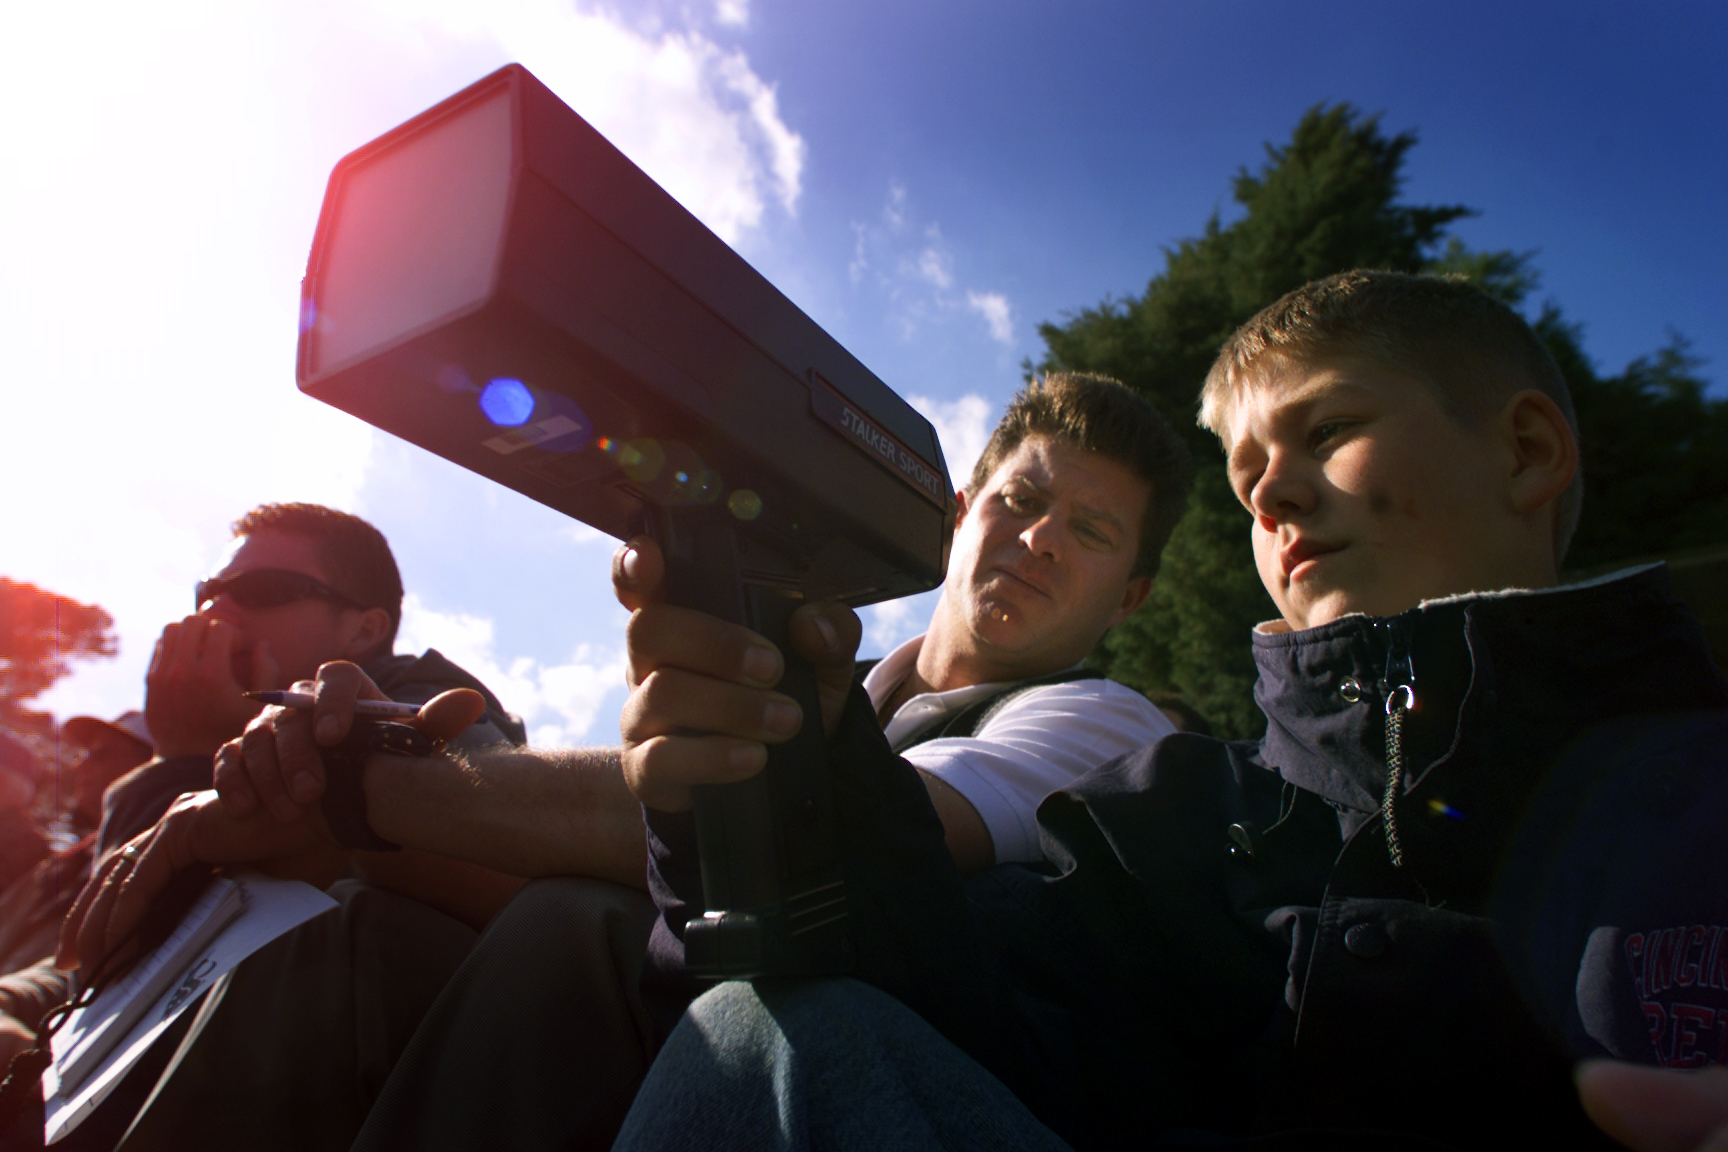 Nick LaVaseur, 12, right, holds a radar gun as he helps his dad Tom LaVaseur (CQ ALL), a scout for t